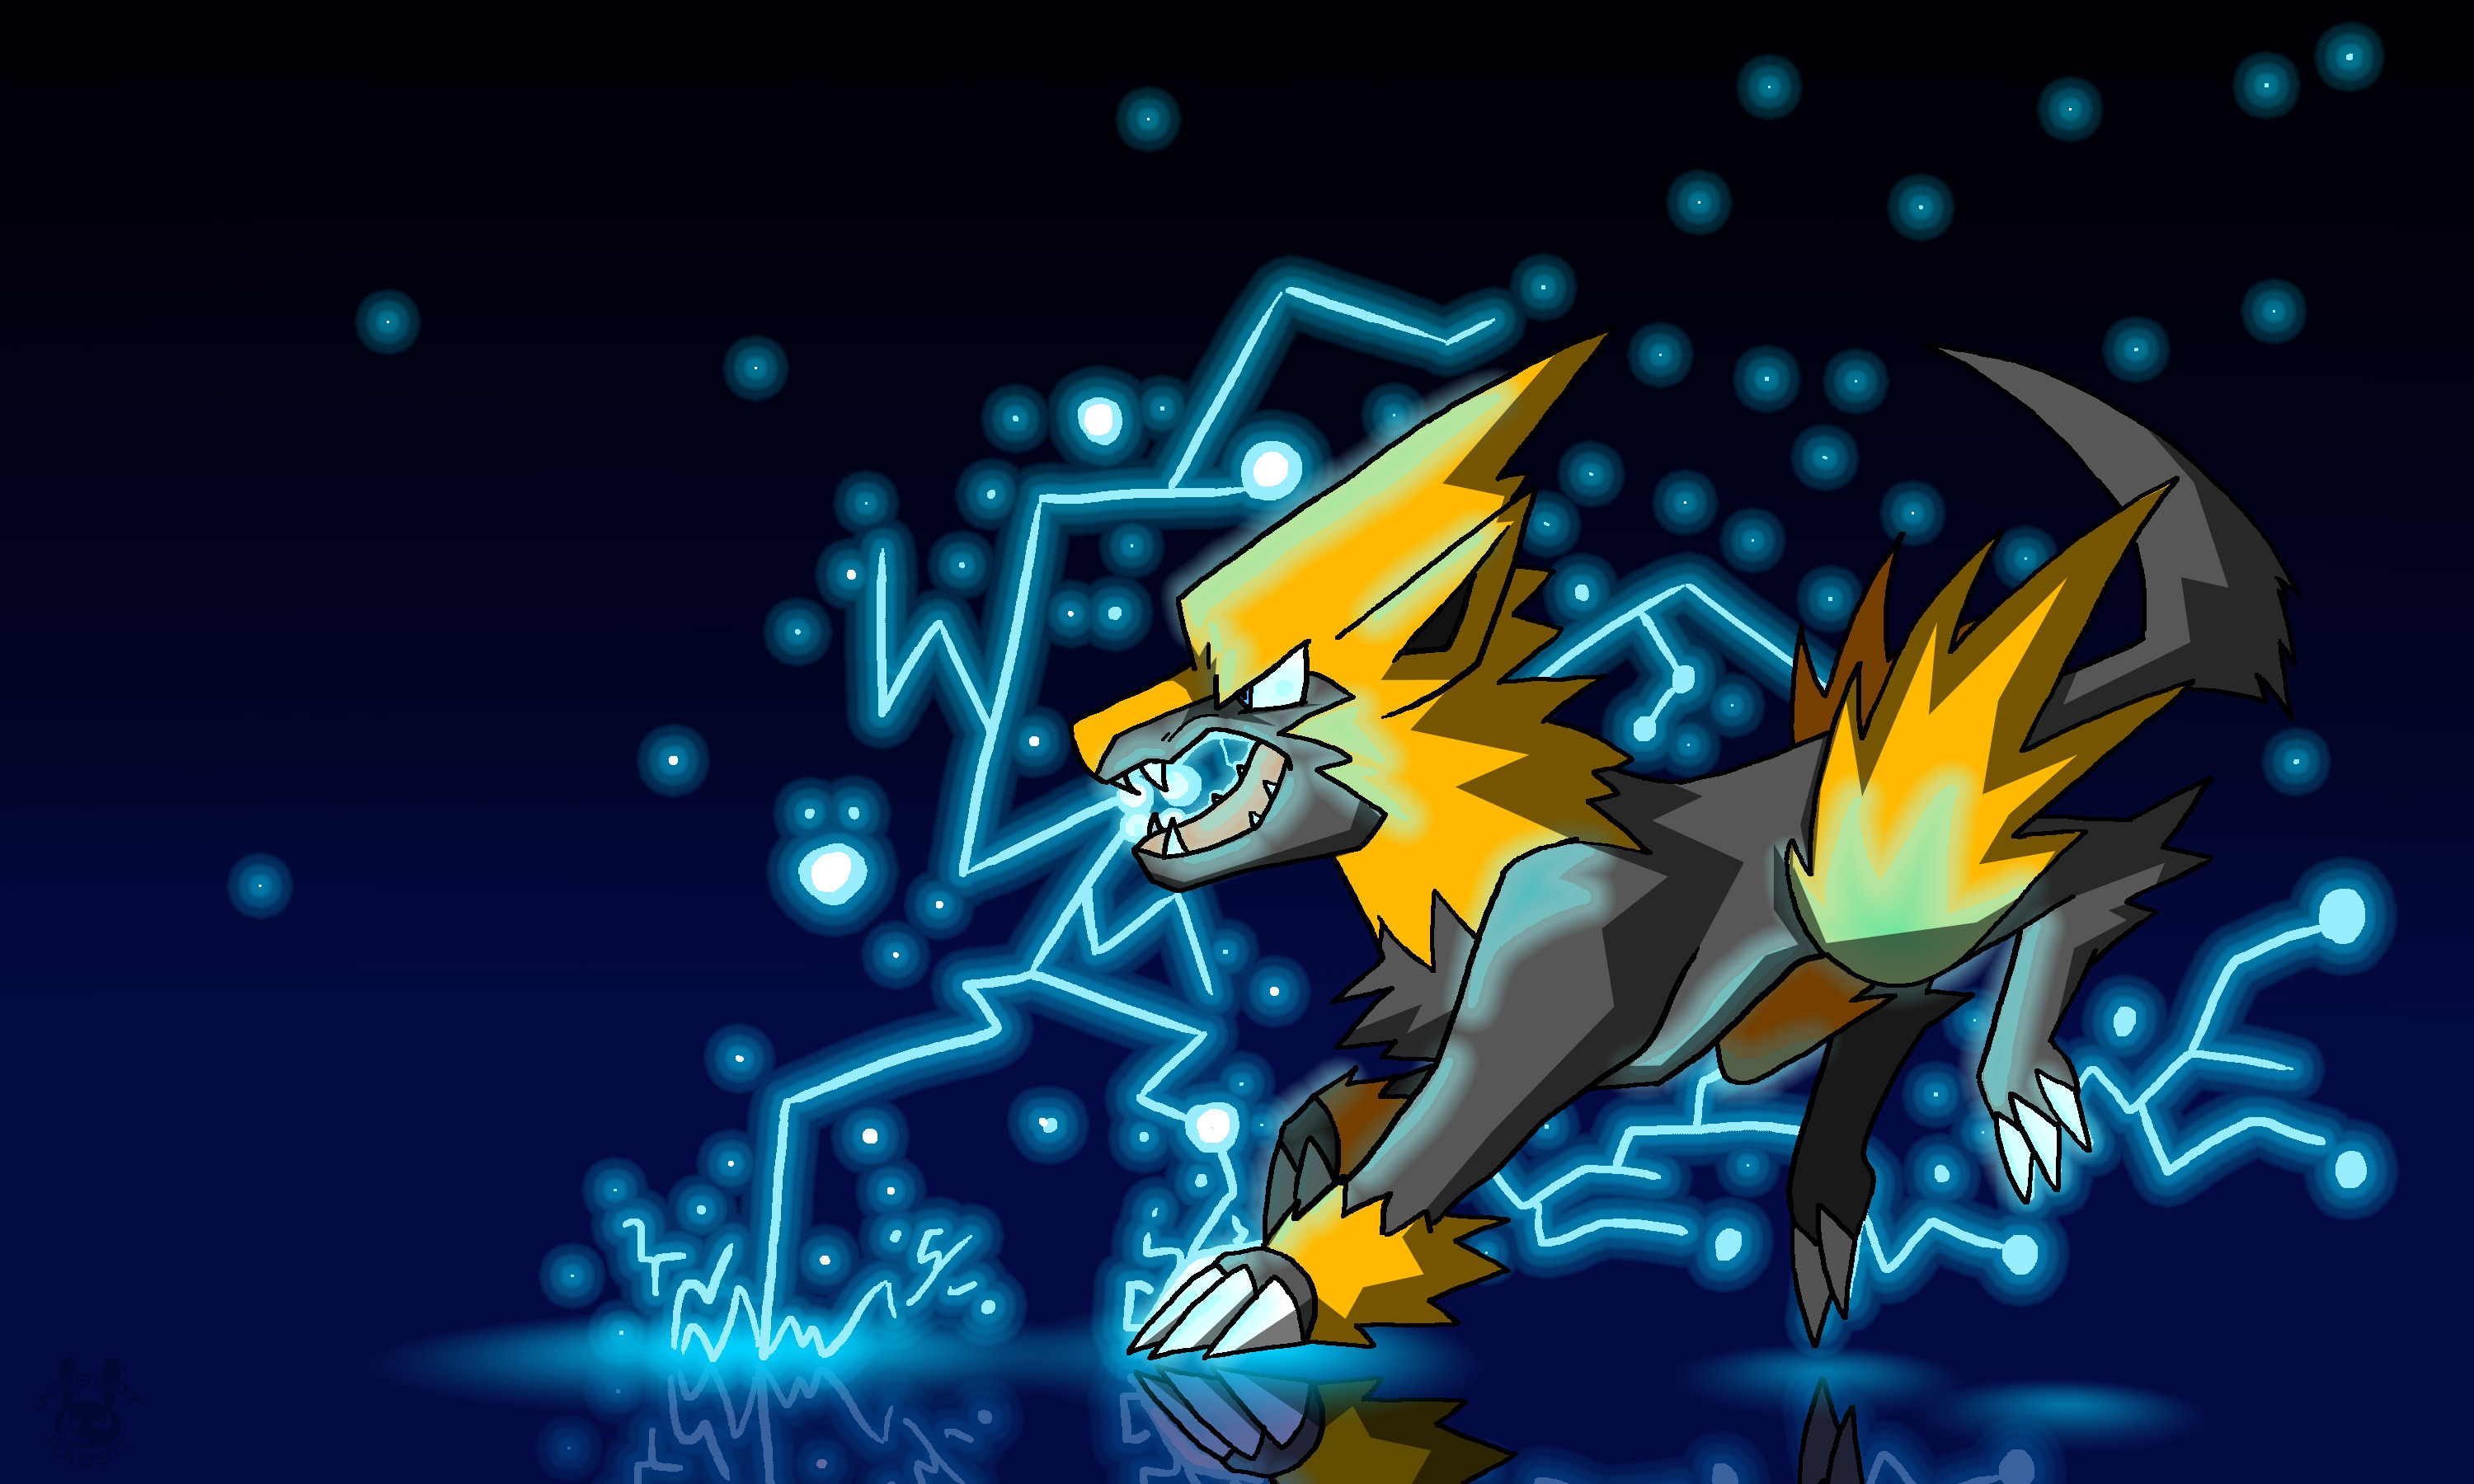 3000x1800 Images Galleries | JVG-6253776 Shiny Pokemon - HD Wallpapers